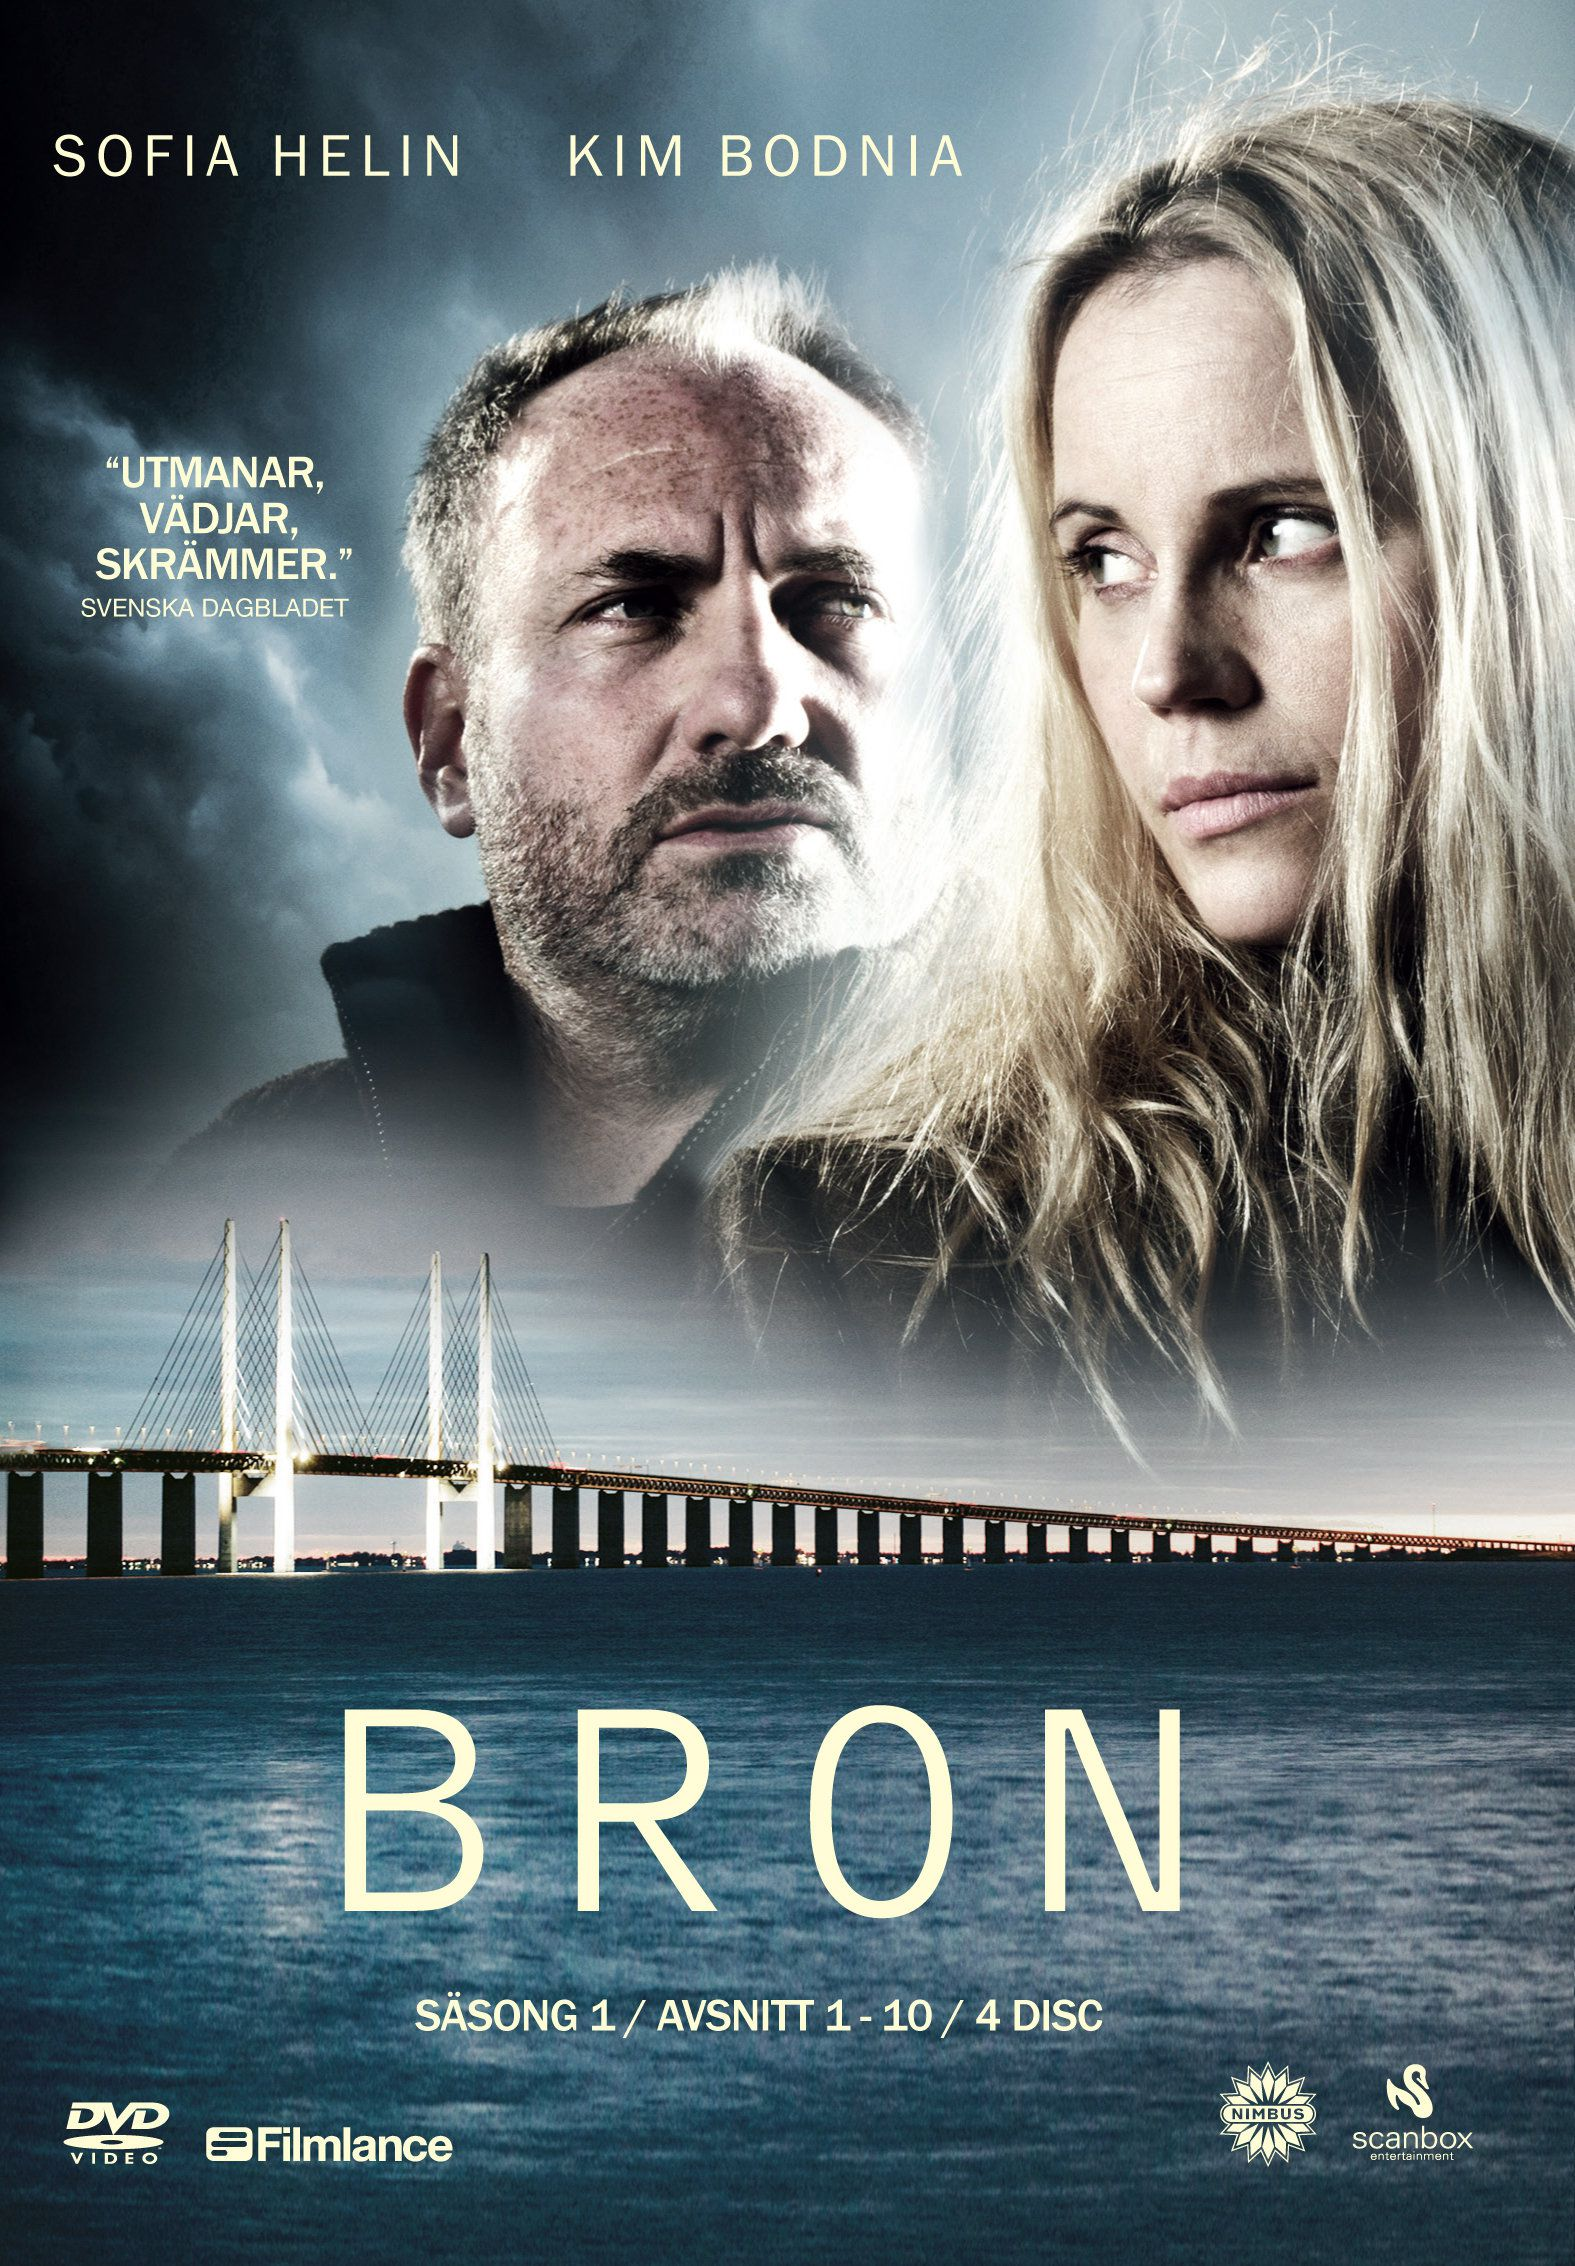 Bron - Série (2011) streaming VF gratuit complet